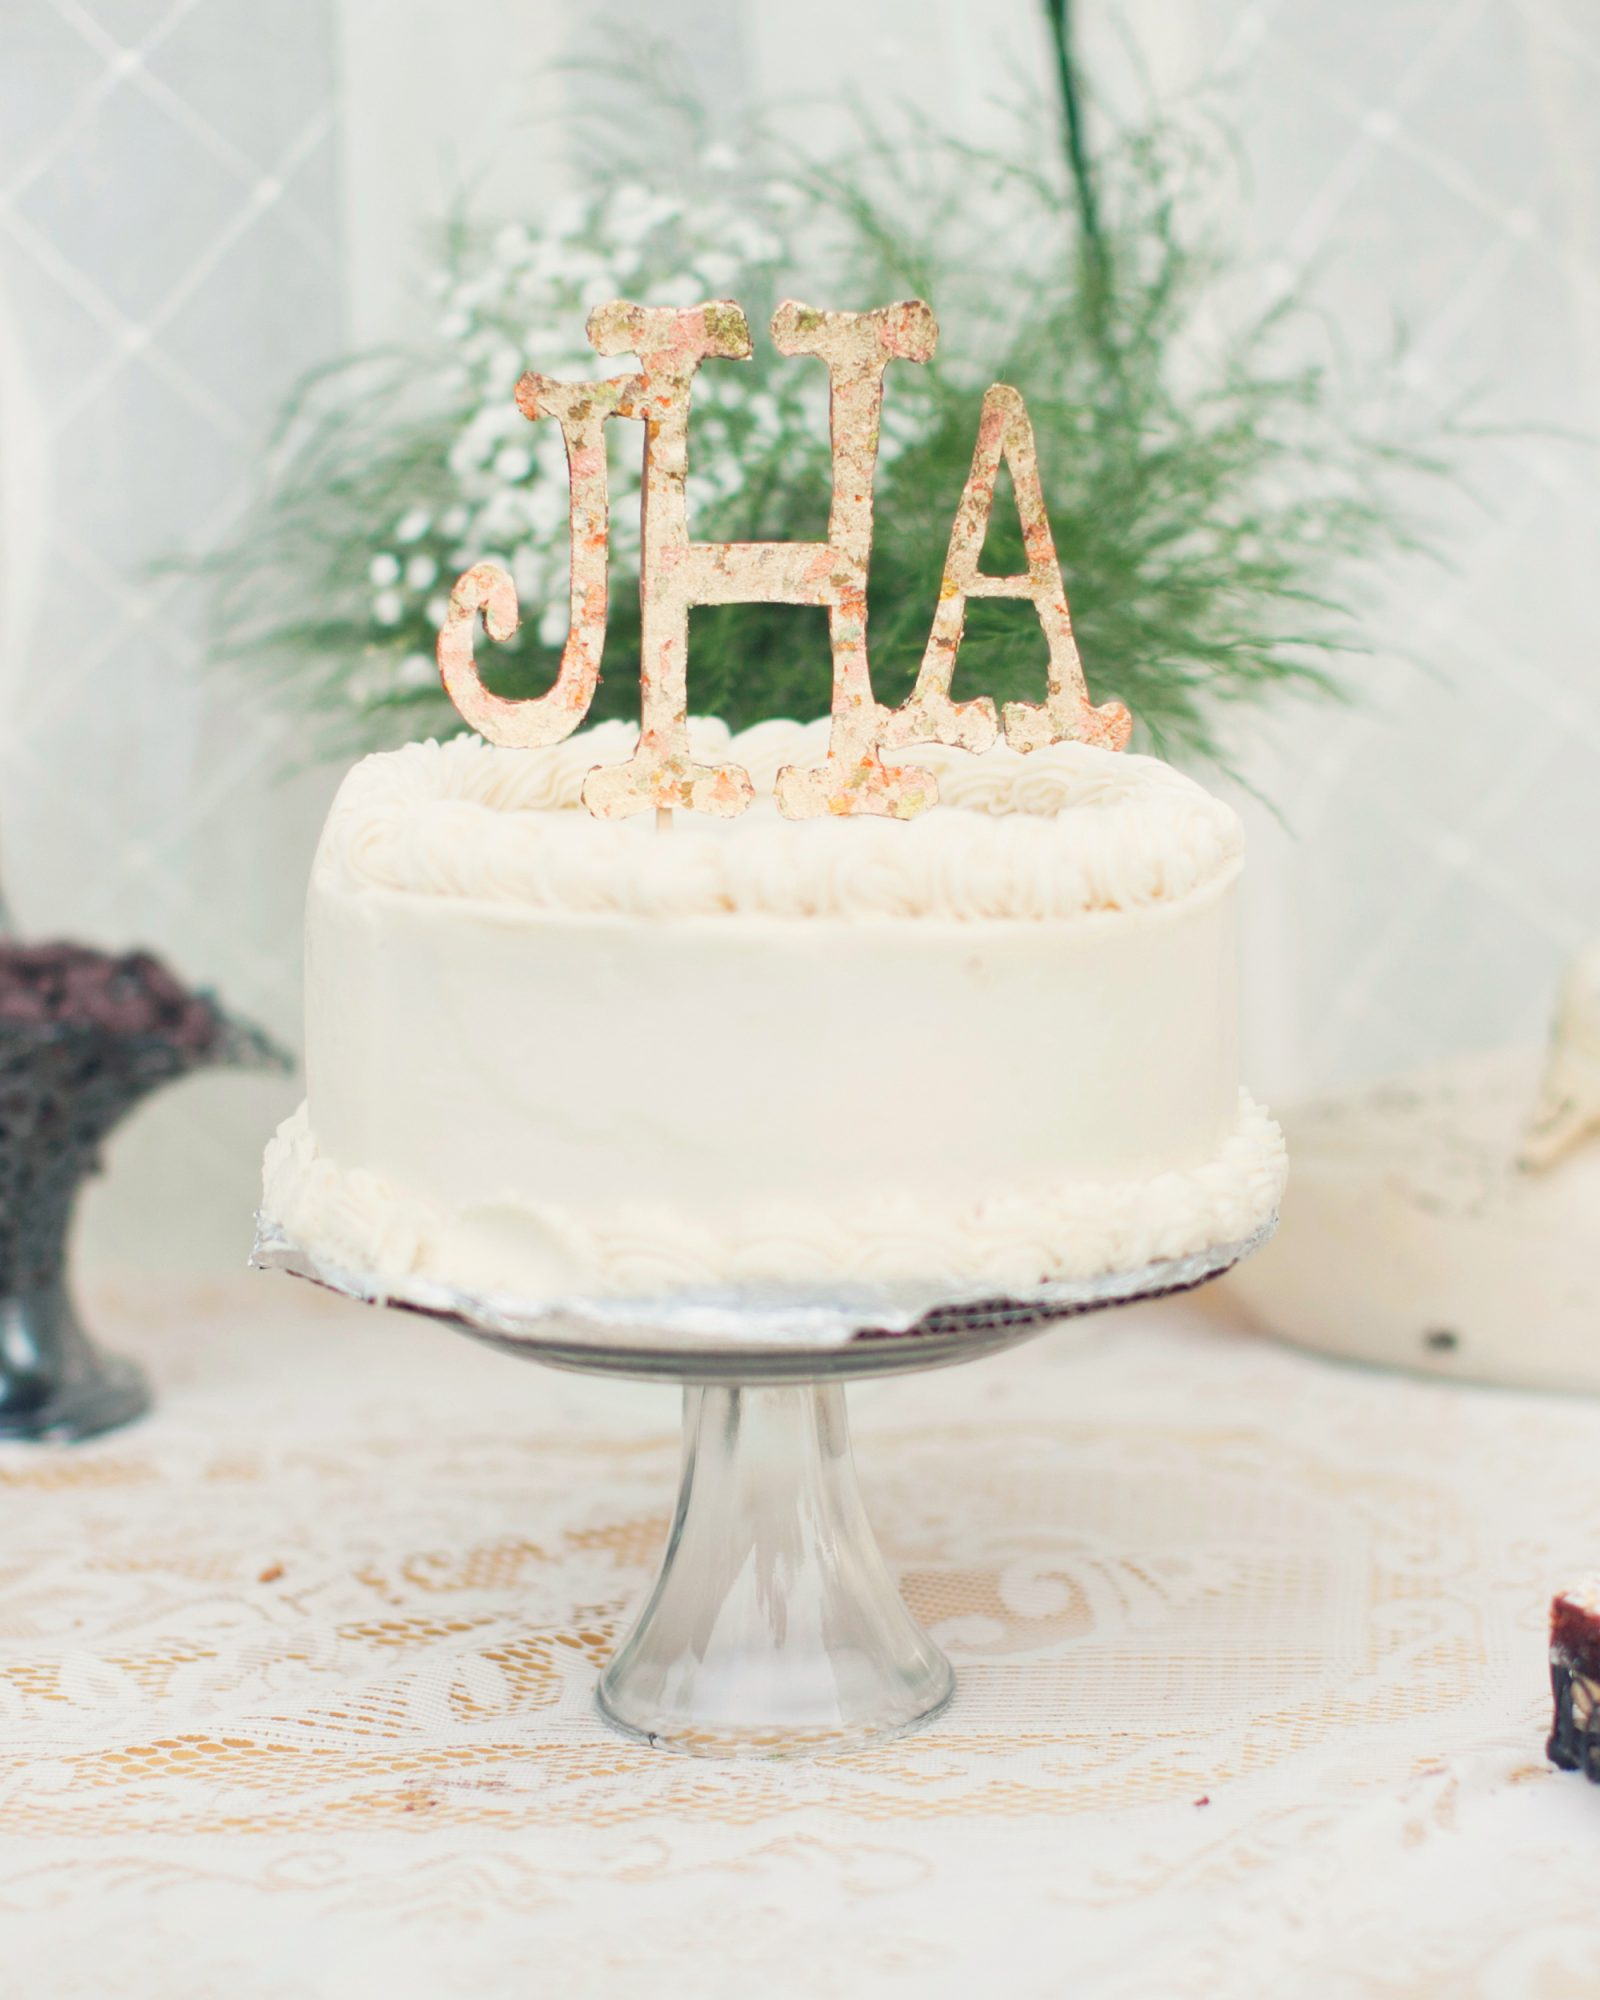 Order a moderately priced, plainly decorated cake, and make the focal point the cake topper. Vintage bride-and-groom figurines, wedding bells, horseshoes, a basket filled with fruit, or a pair of doves (from an antiques shop or handmade) are classic symbols that can make a cake memorable.